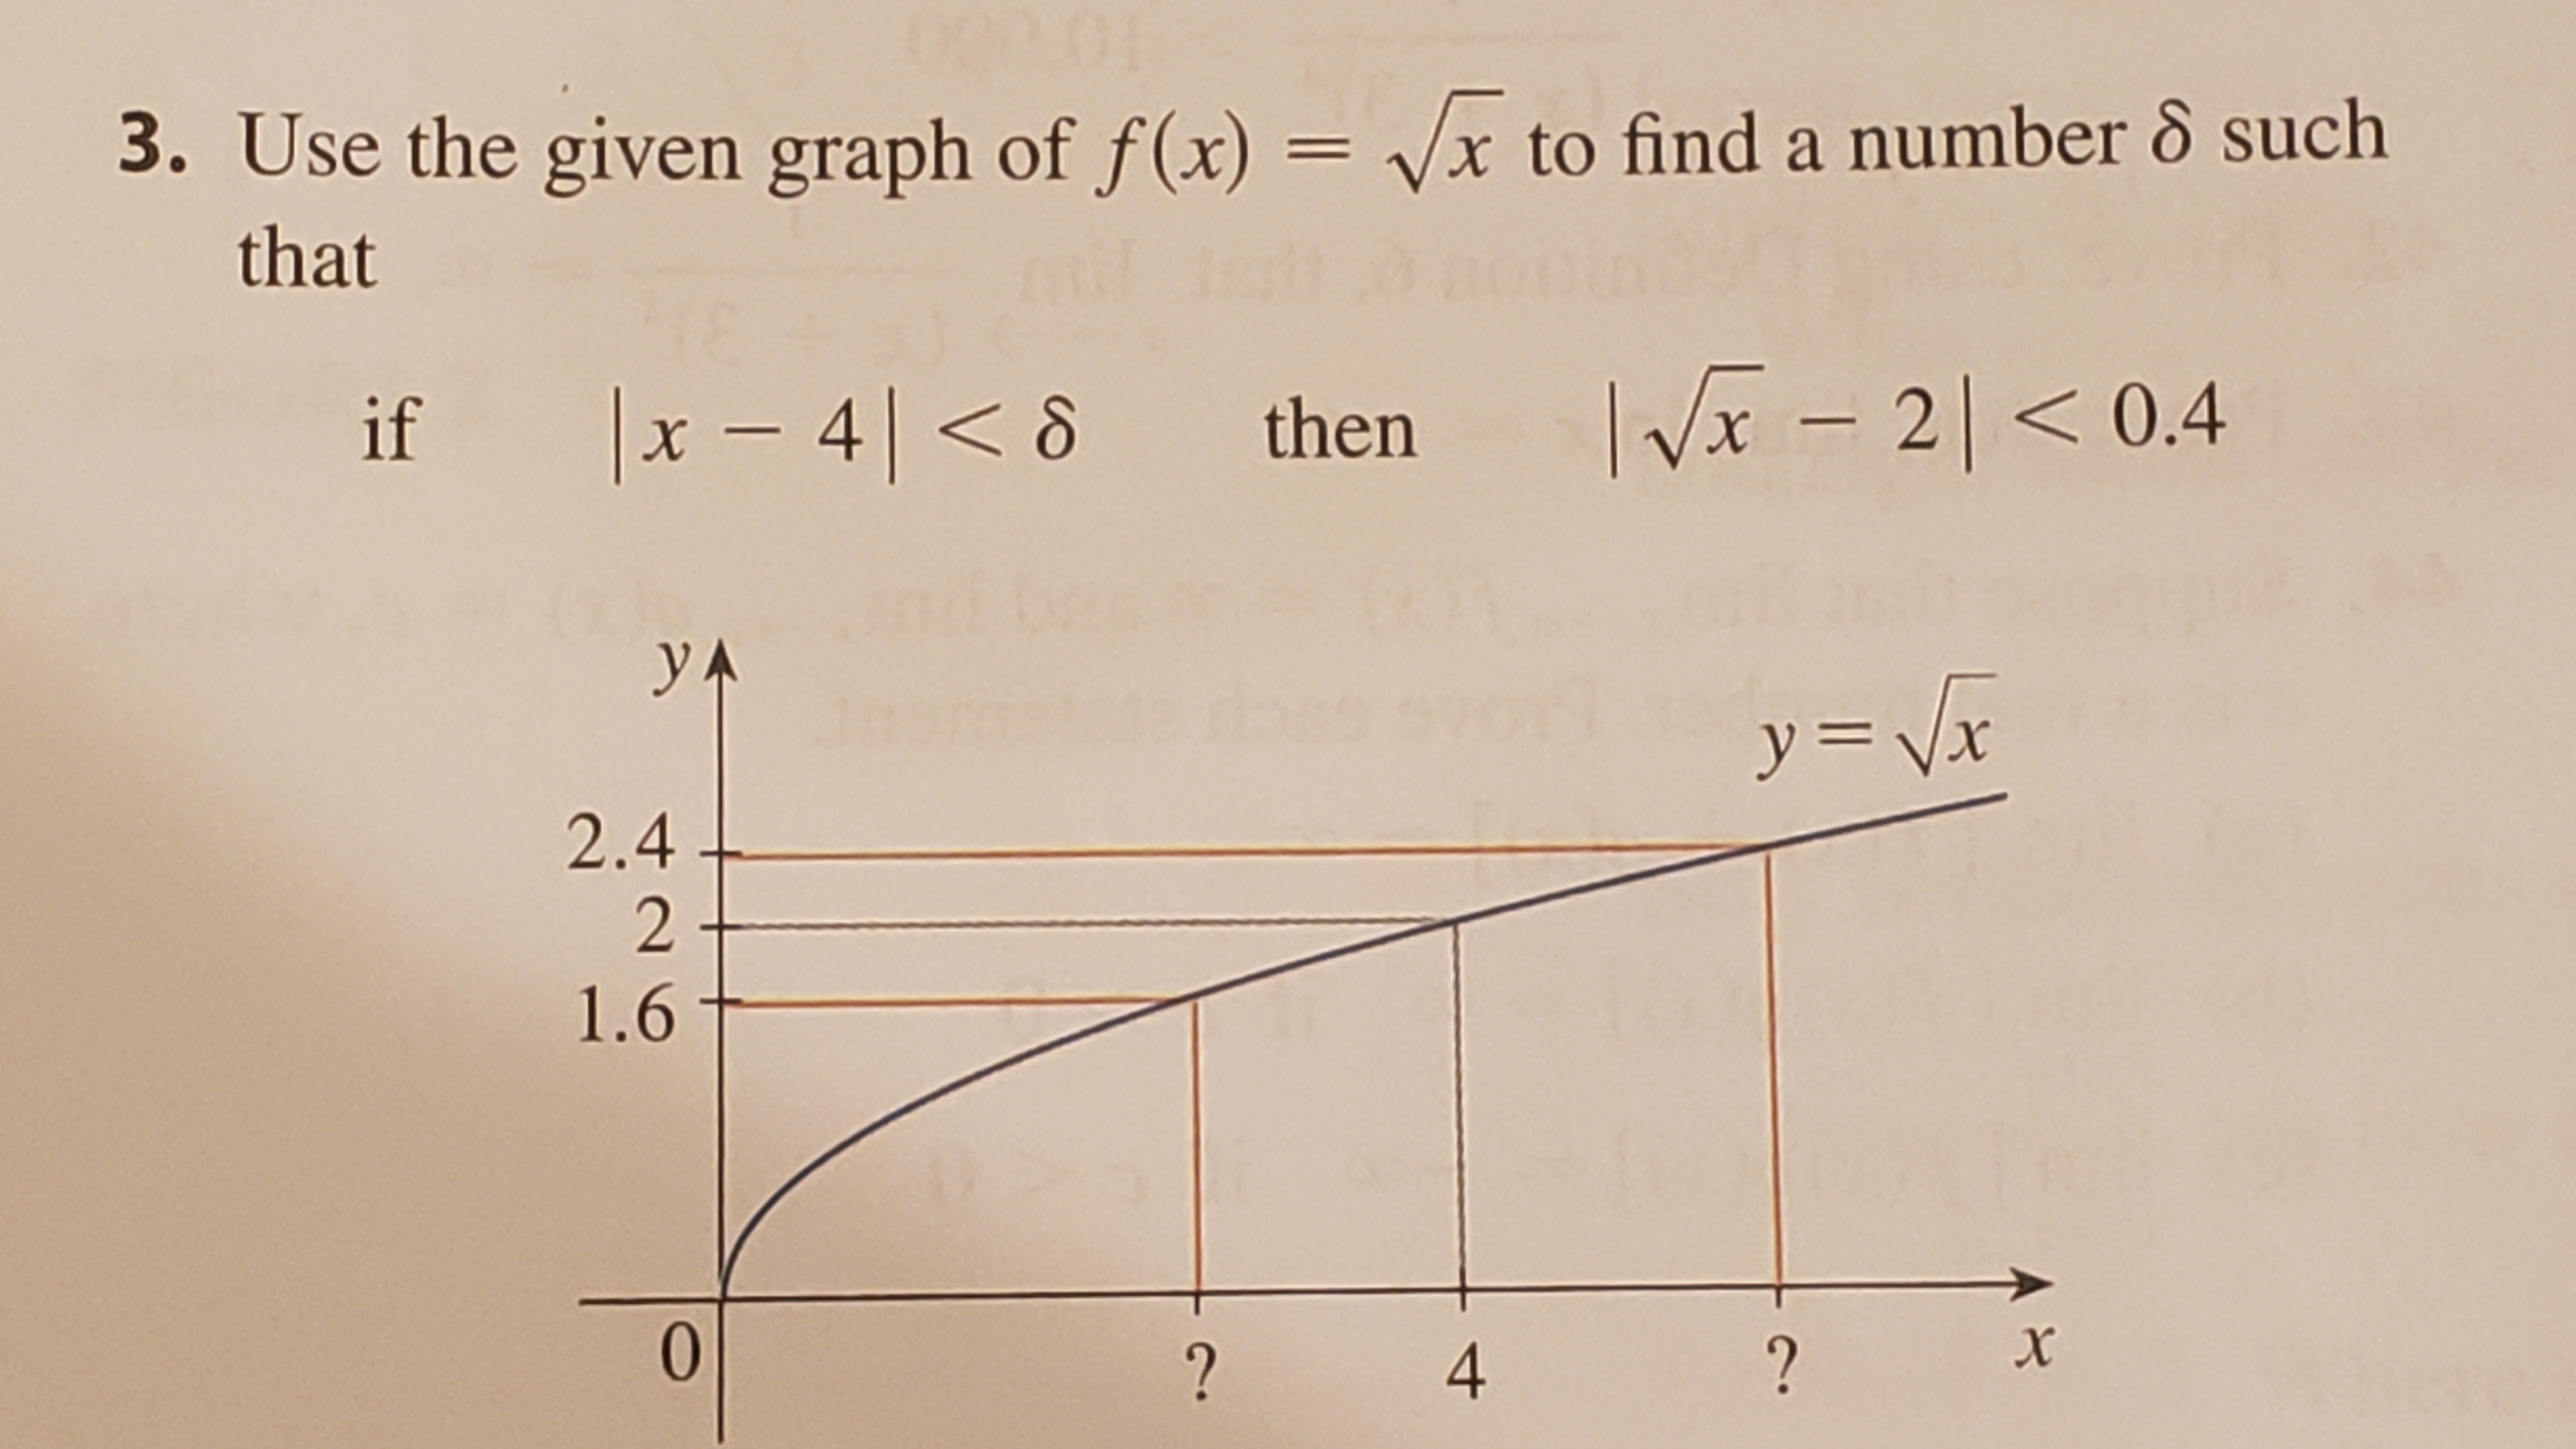 3. Use the given graph of f(x) = vx to find a number 8 such that IVx - 20.4 x48 then if yA y Vr 2.4 2 1.6 0 x ? ? 4